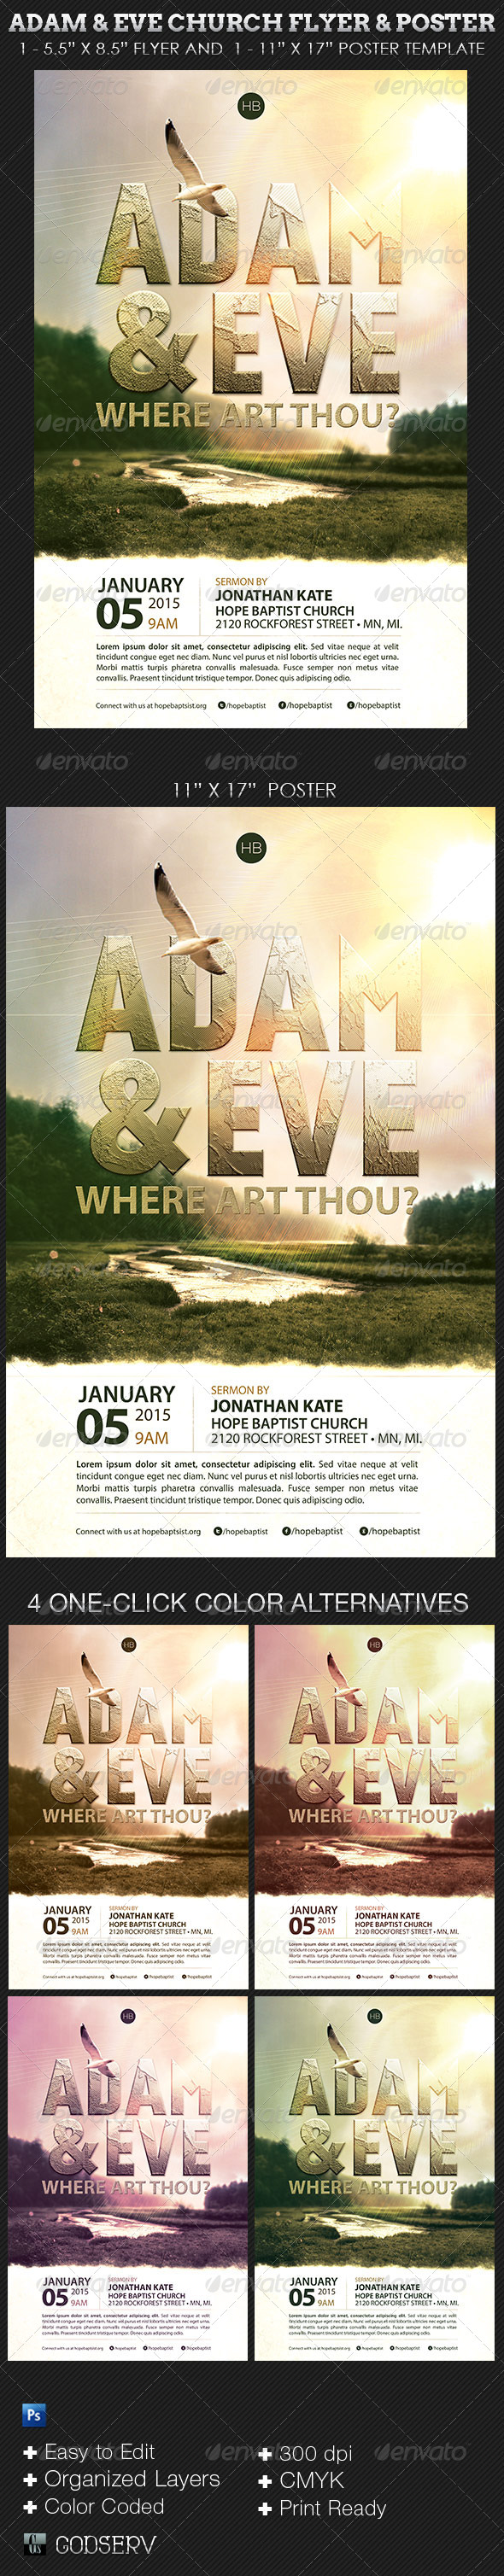 Adam and Eve Flyer and Poster Church Template - Church Flyers